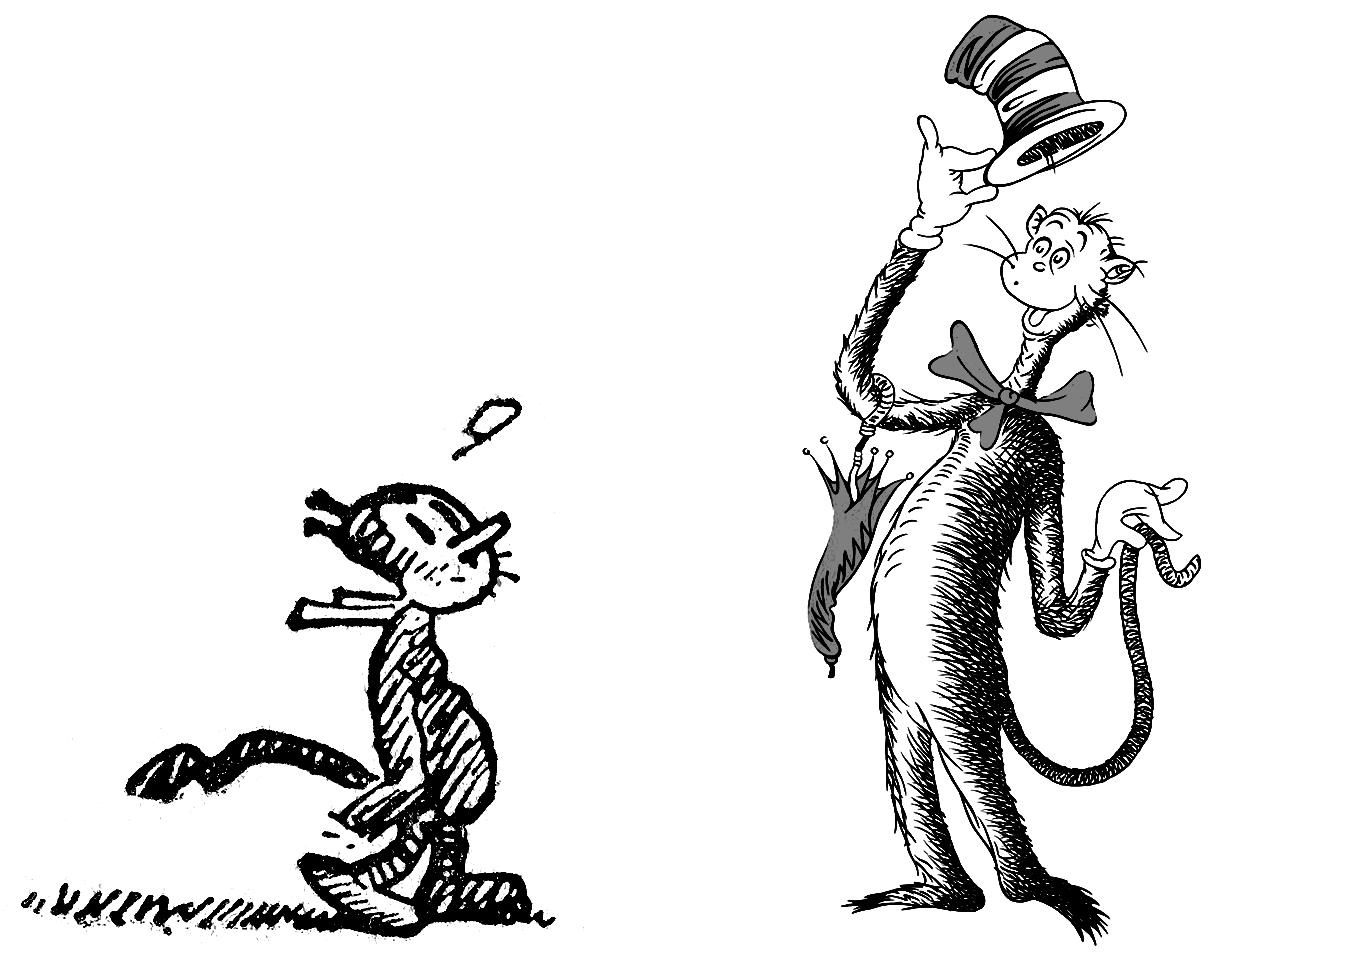 How Dr Seuss Created The Cat In The Hat The Work Behind The Work